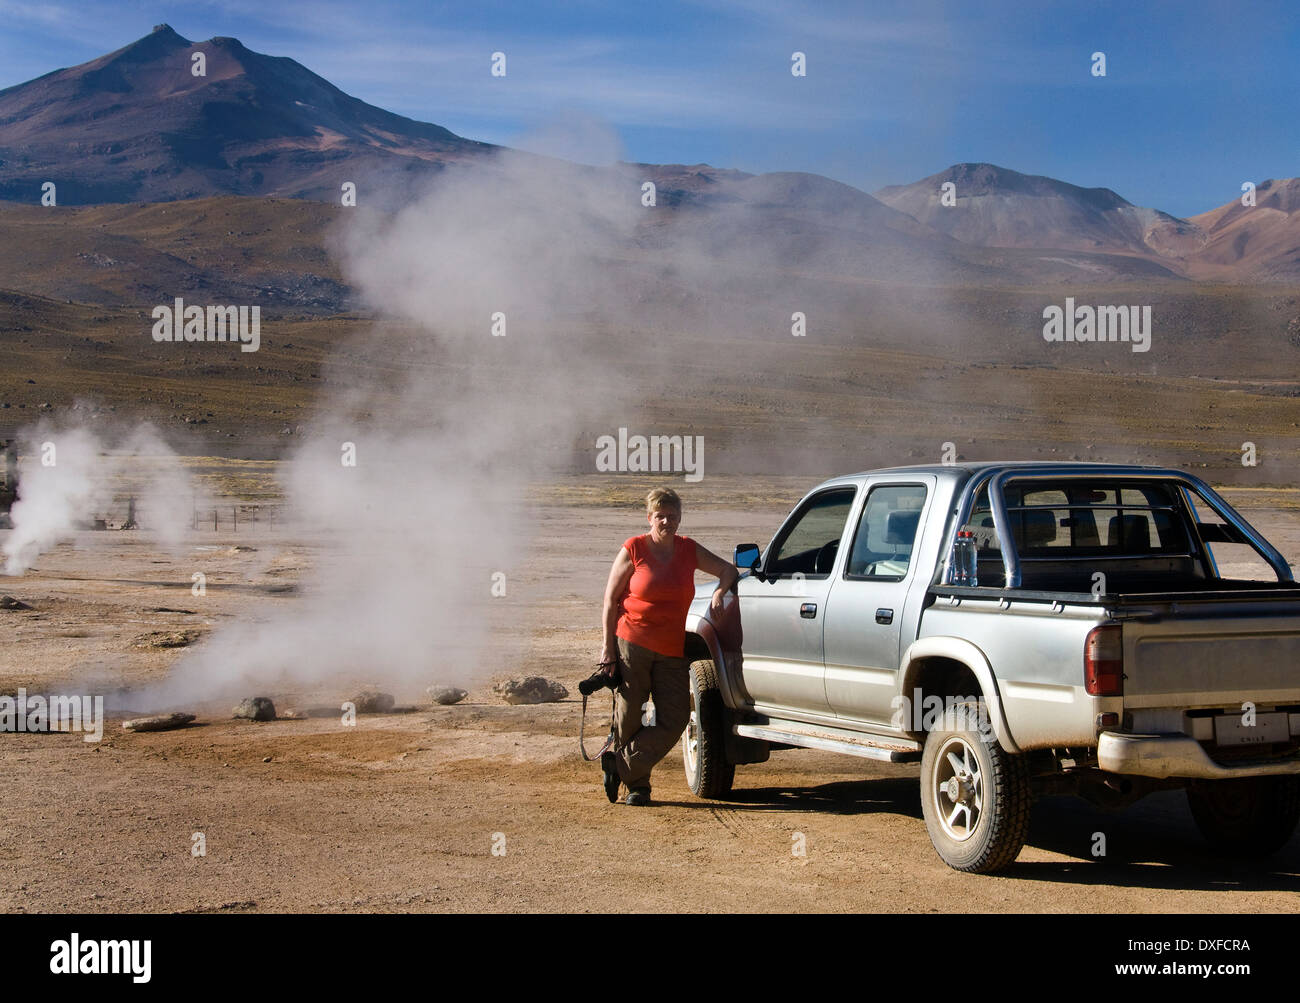 Tourist at the El Tatio Geysers in the Atacama Desert in Chile (Model Released) - Stock Image